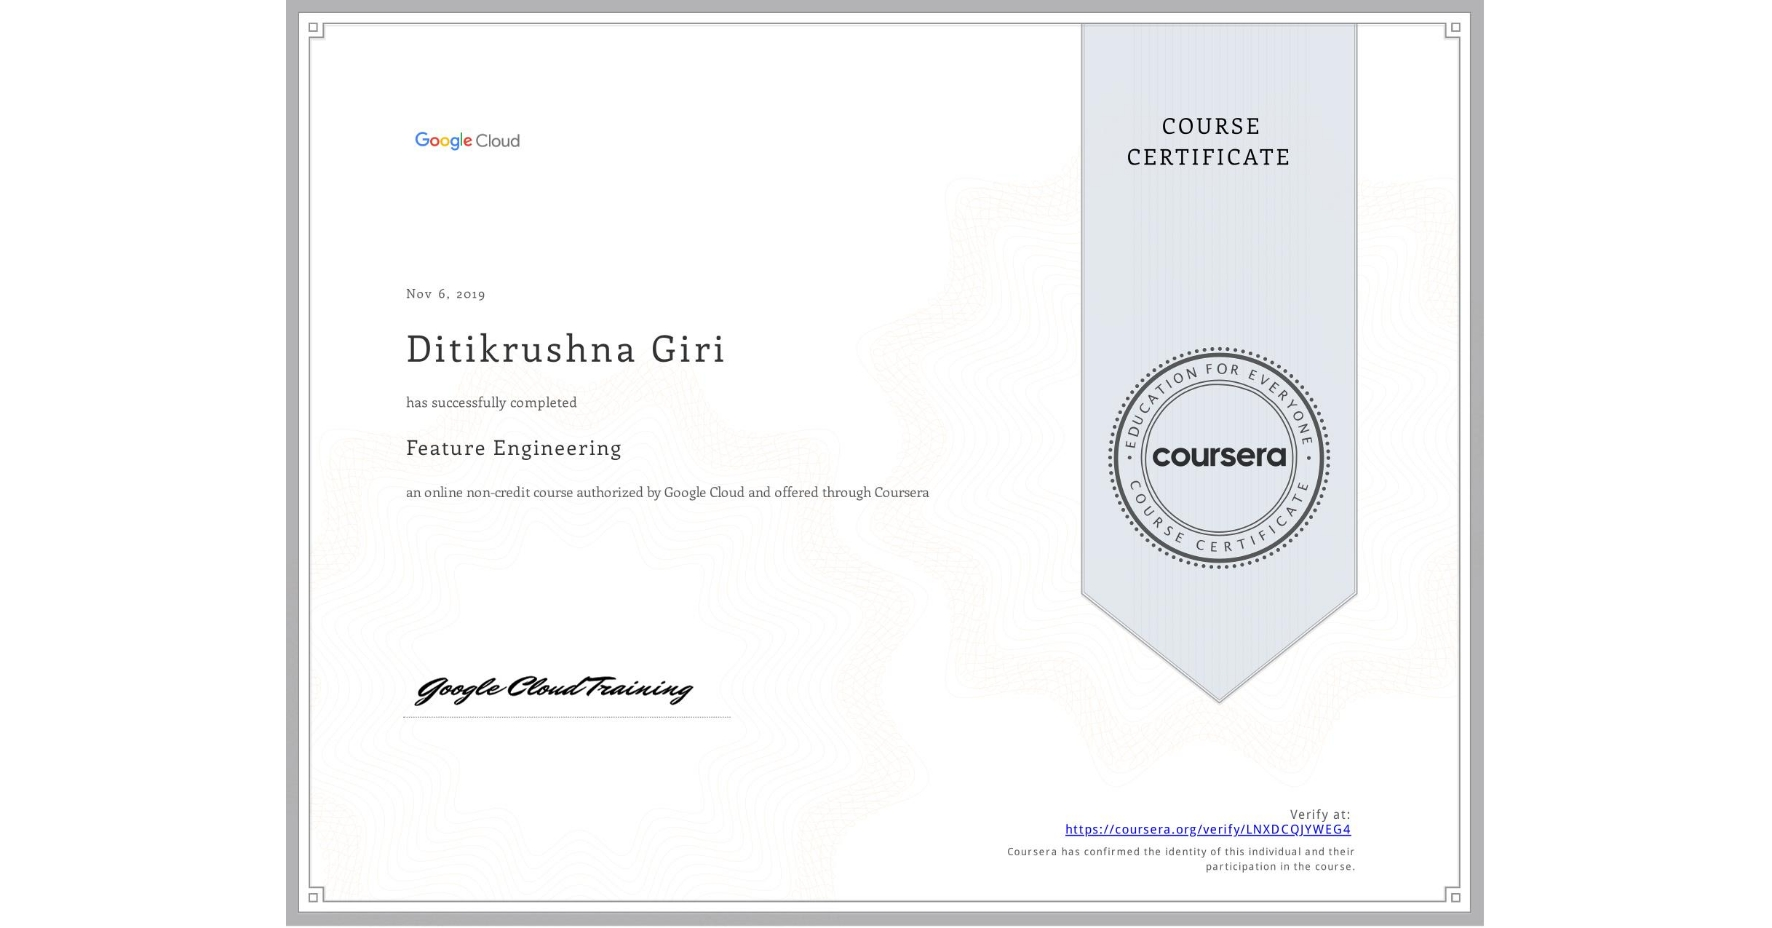 View certificate for Ditikrushna Giri, Feature Engineering, an online non-credit course authorized by Google Cloud and offered through Coursera